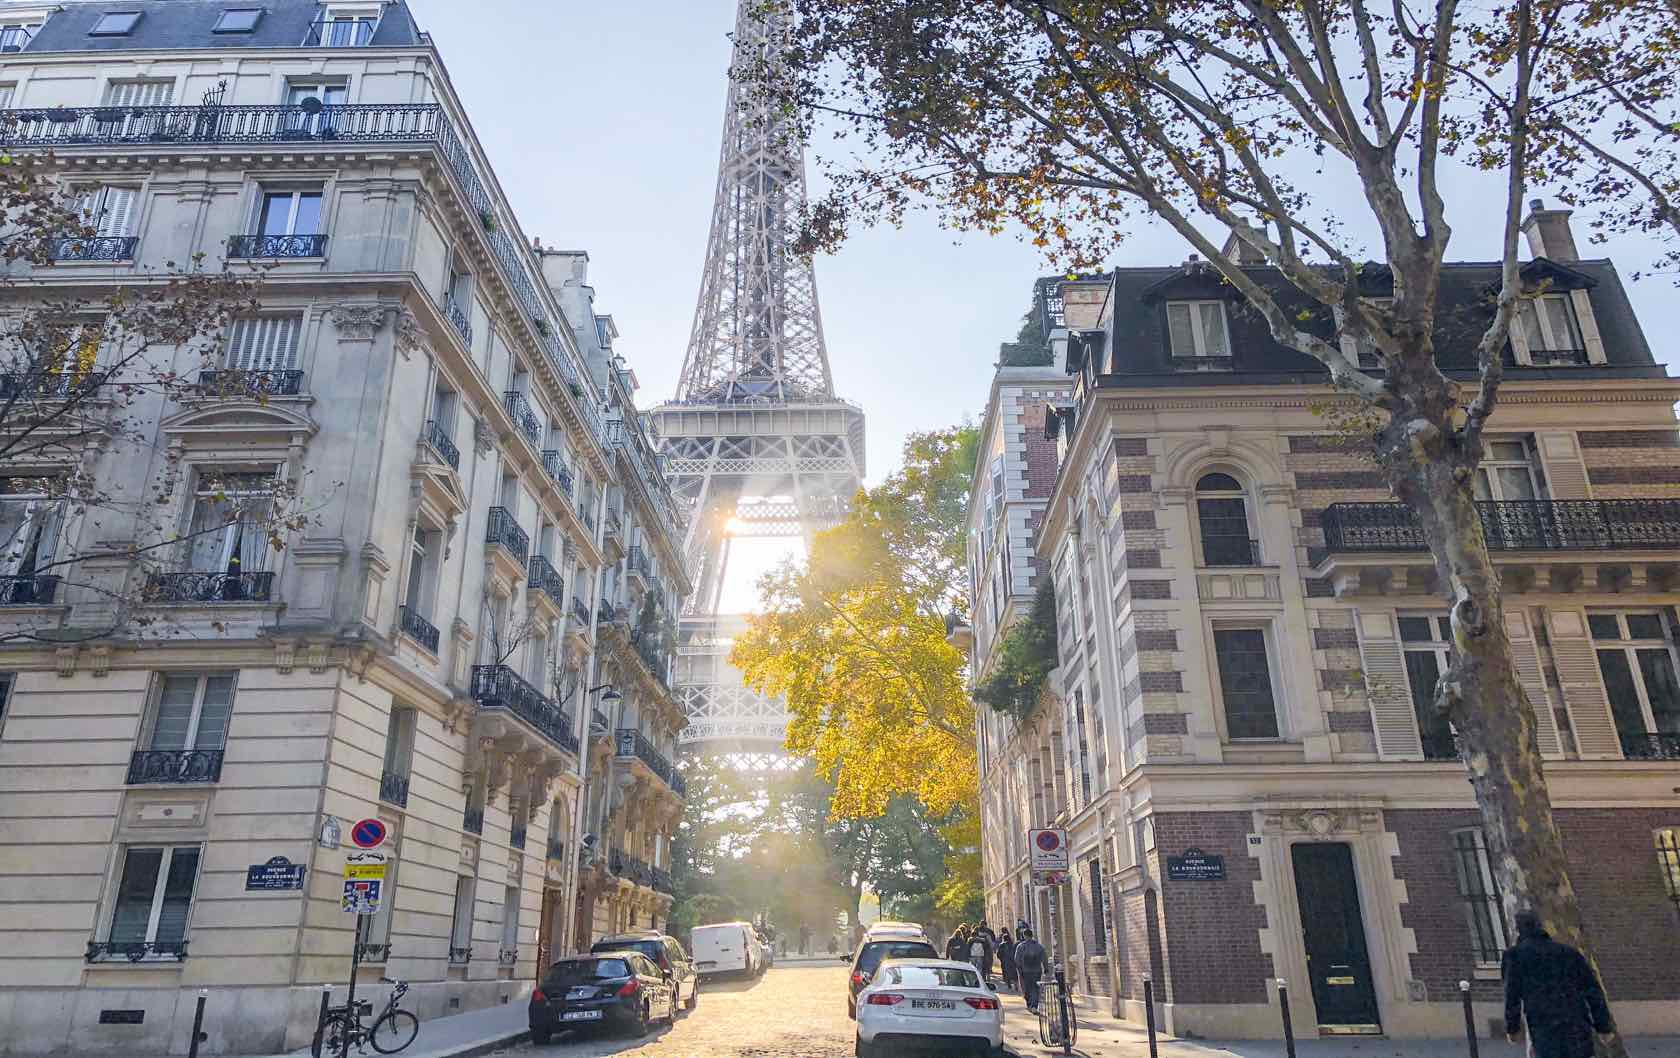 Eiffel Tower Insta-Famous Spots in Paris by Paris Perfect